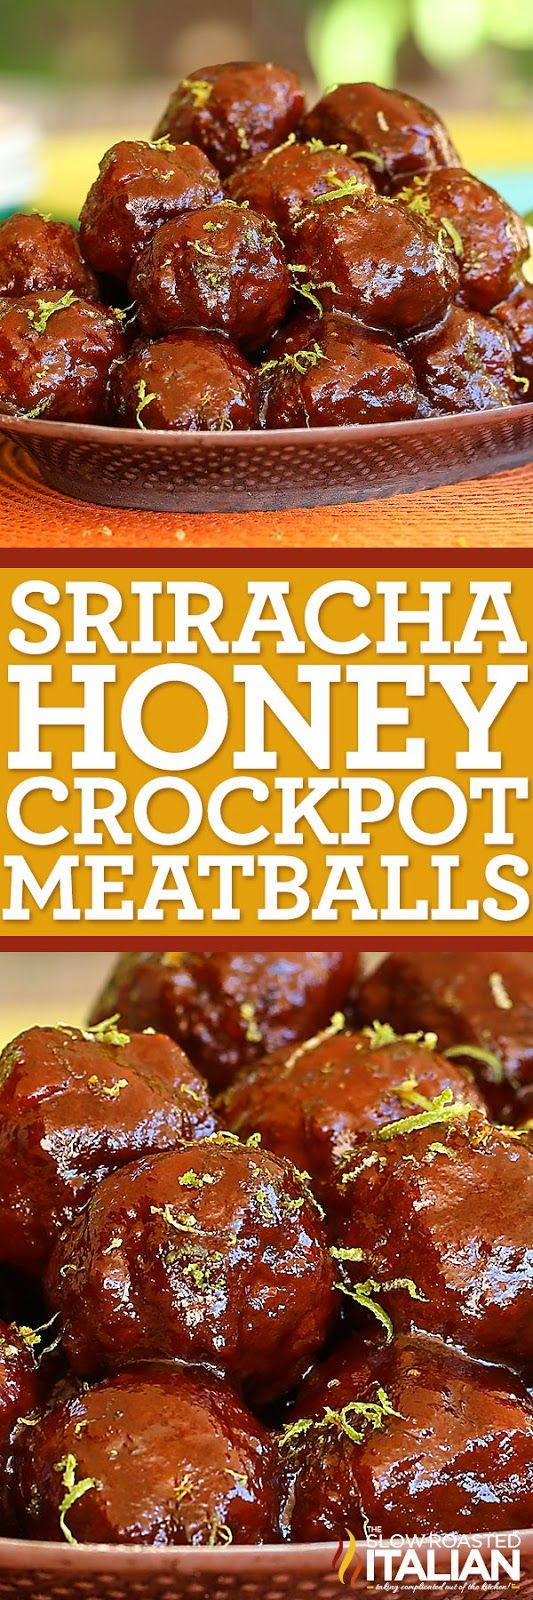 This is for the sriracha lover in you. Sriracha Honey Slow Cooker Meatballs are hot, sweet, tangy and wildly addictive. A simple recipe, this dish just about cooks itself. Add the sauce ingredients, form the meatballs. Toss them in the slow cooker and voila. The best make ahead game day or any day food. What more could you ask for?